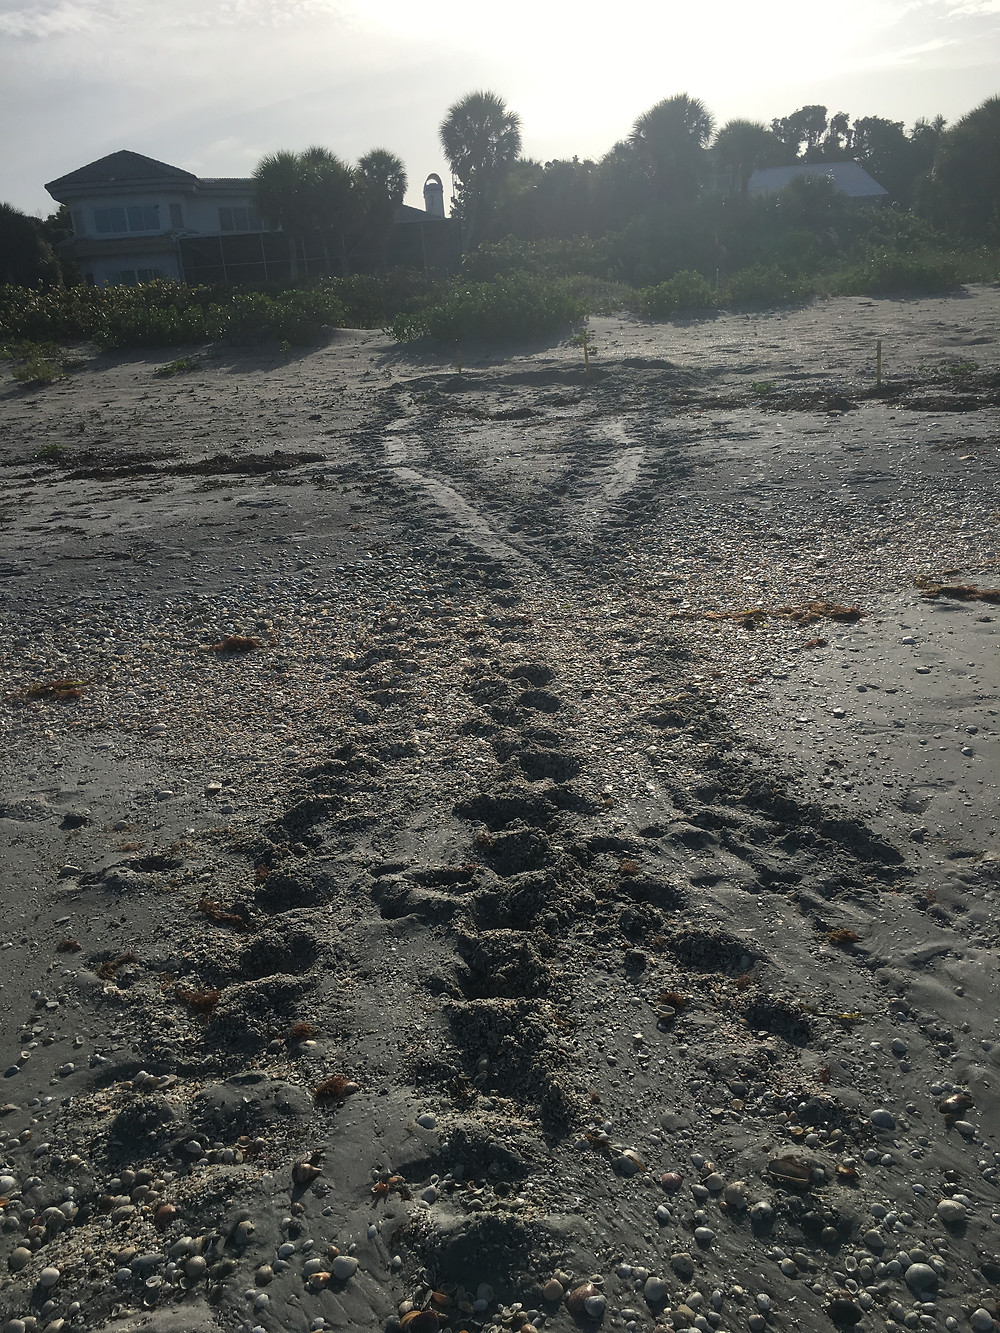 Tracks from a nesting sea turtle on the beach.